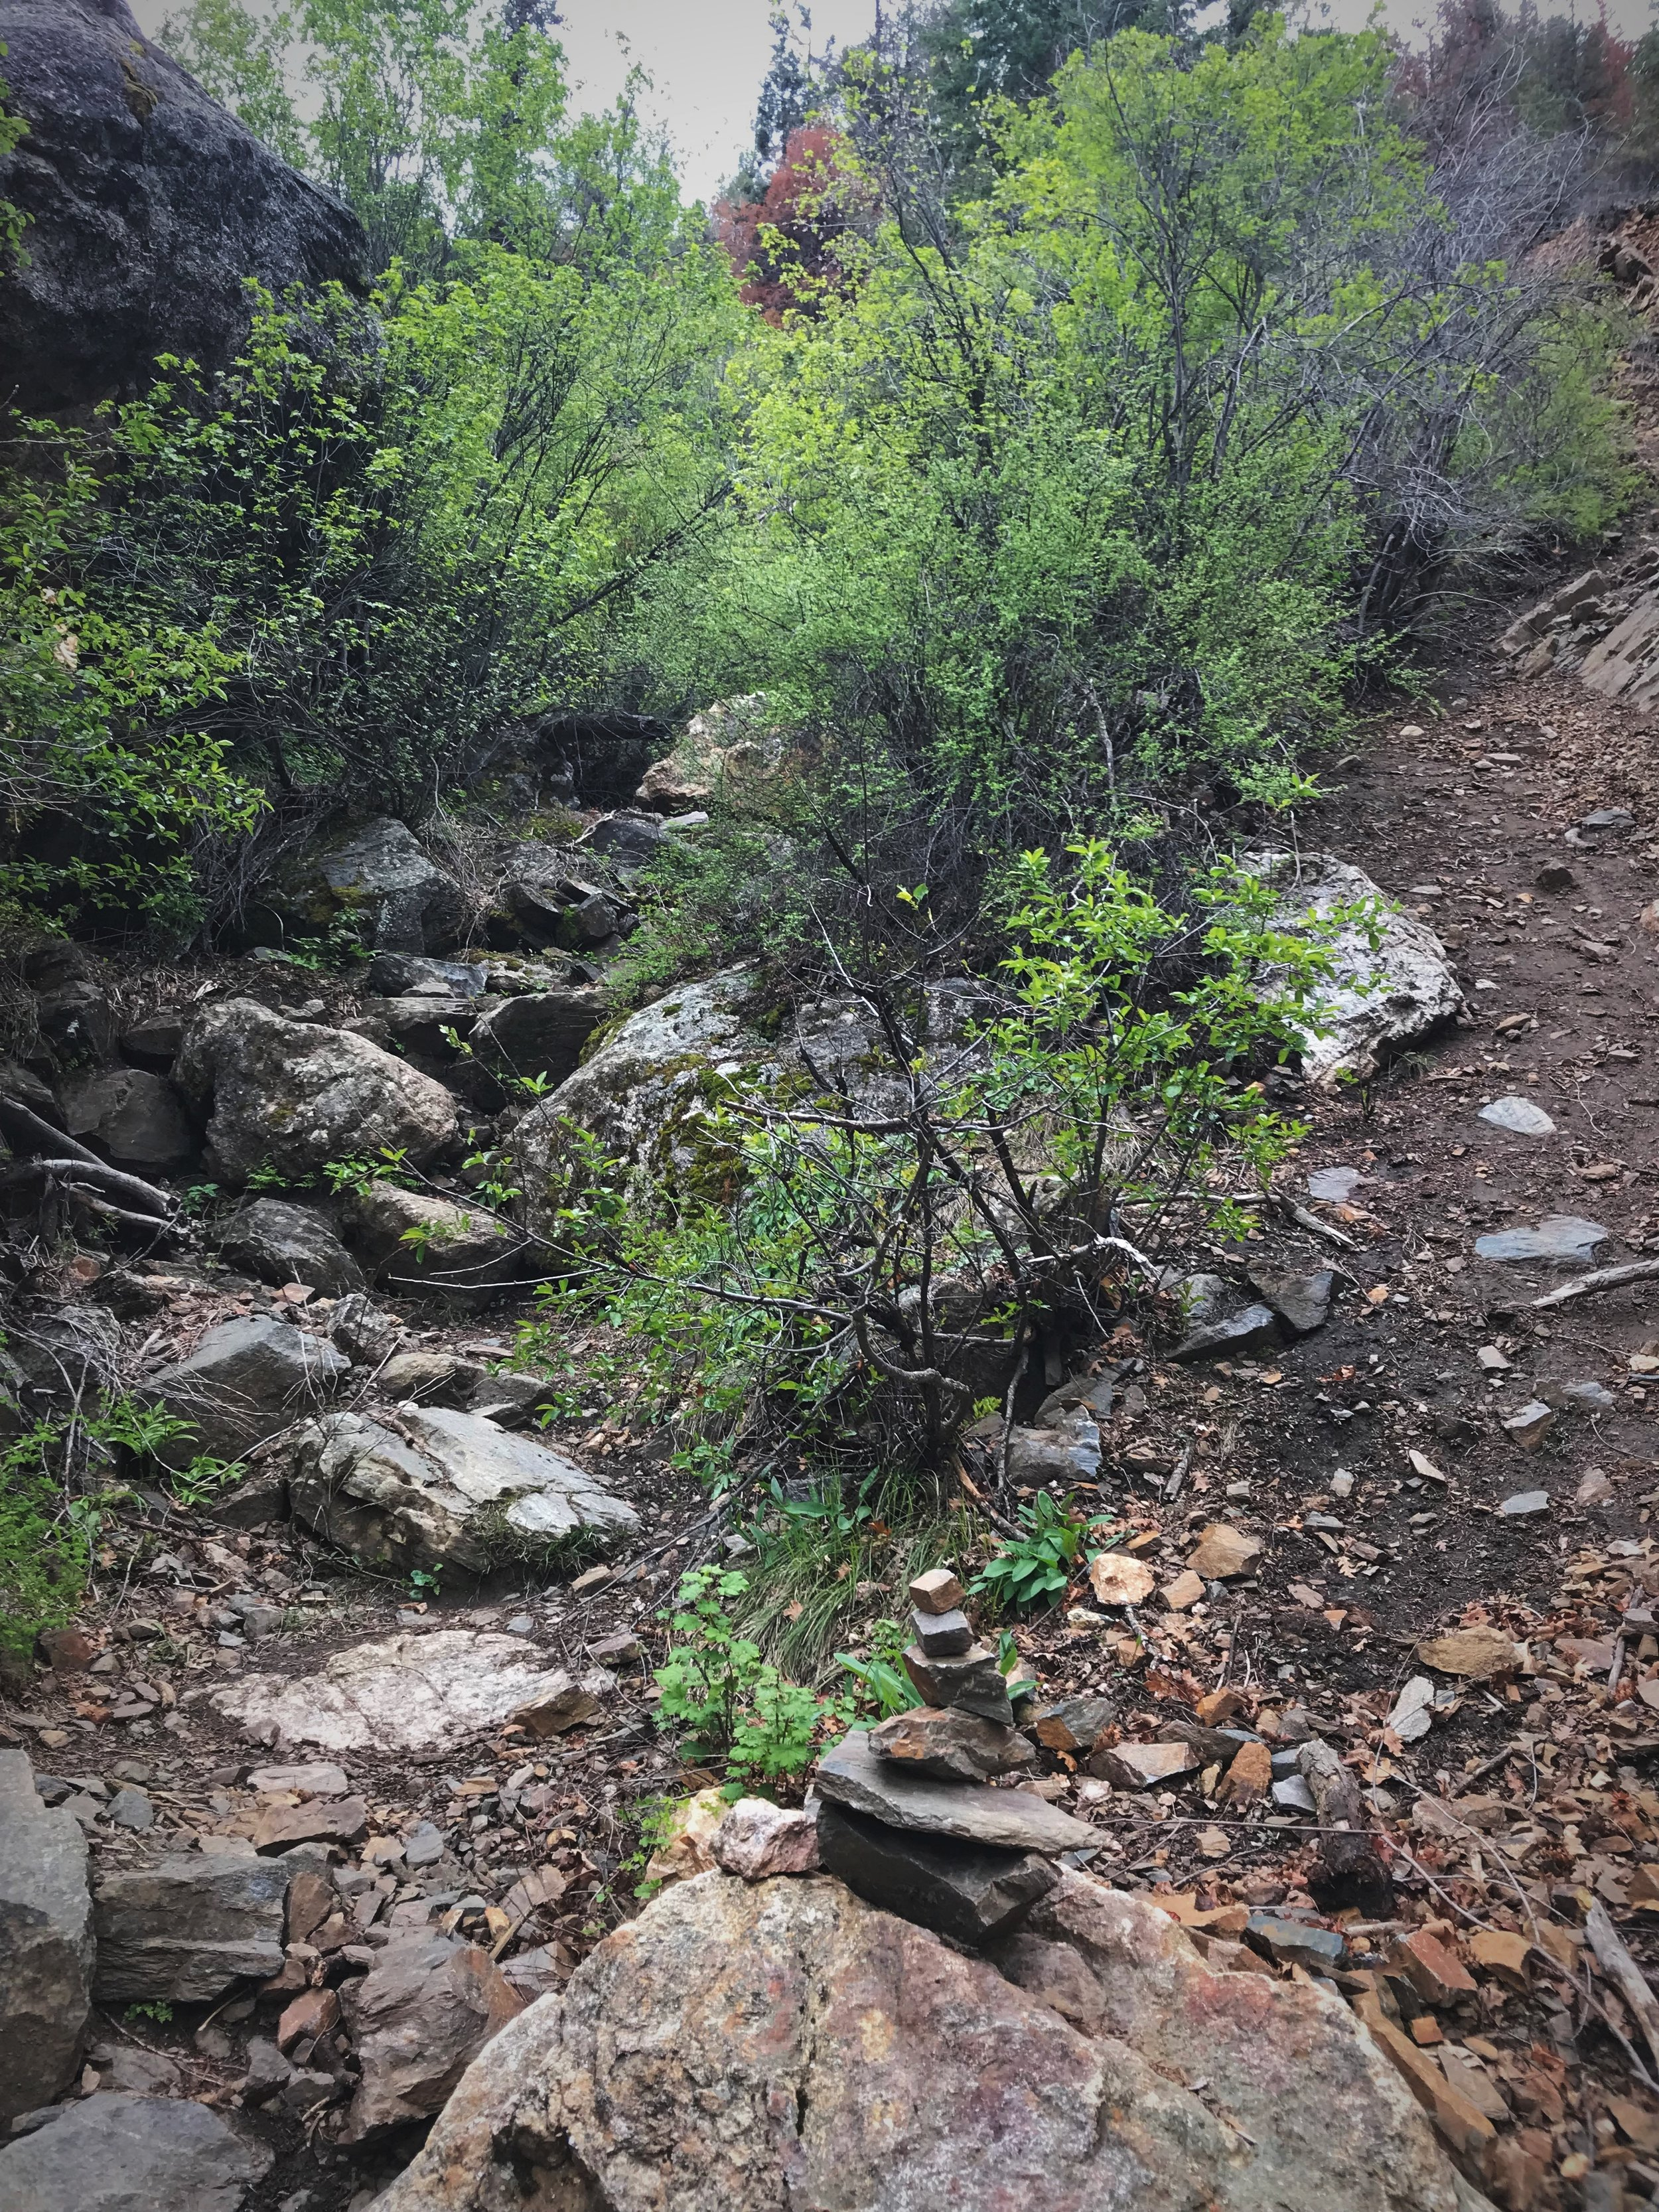 Cairns will lead you down the Gunnison Route, but there is no maintained trail down the canyon walls.